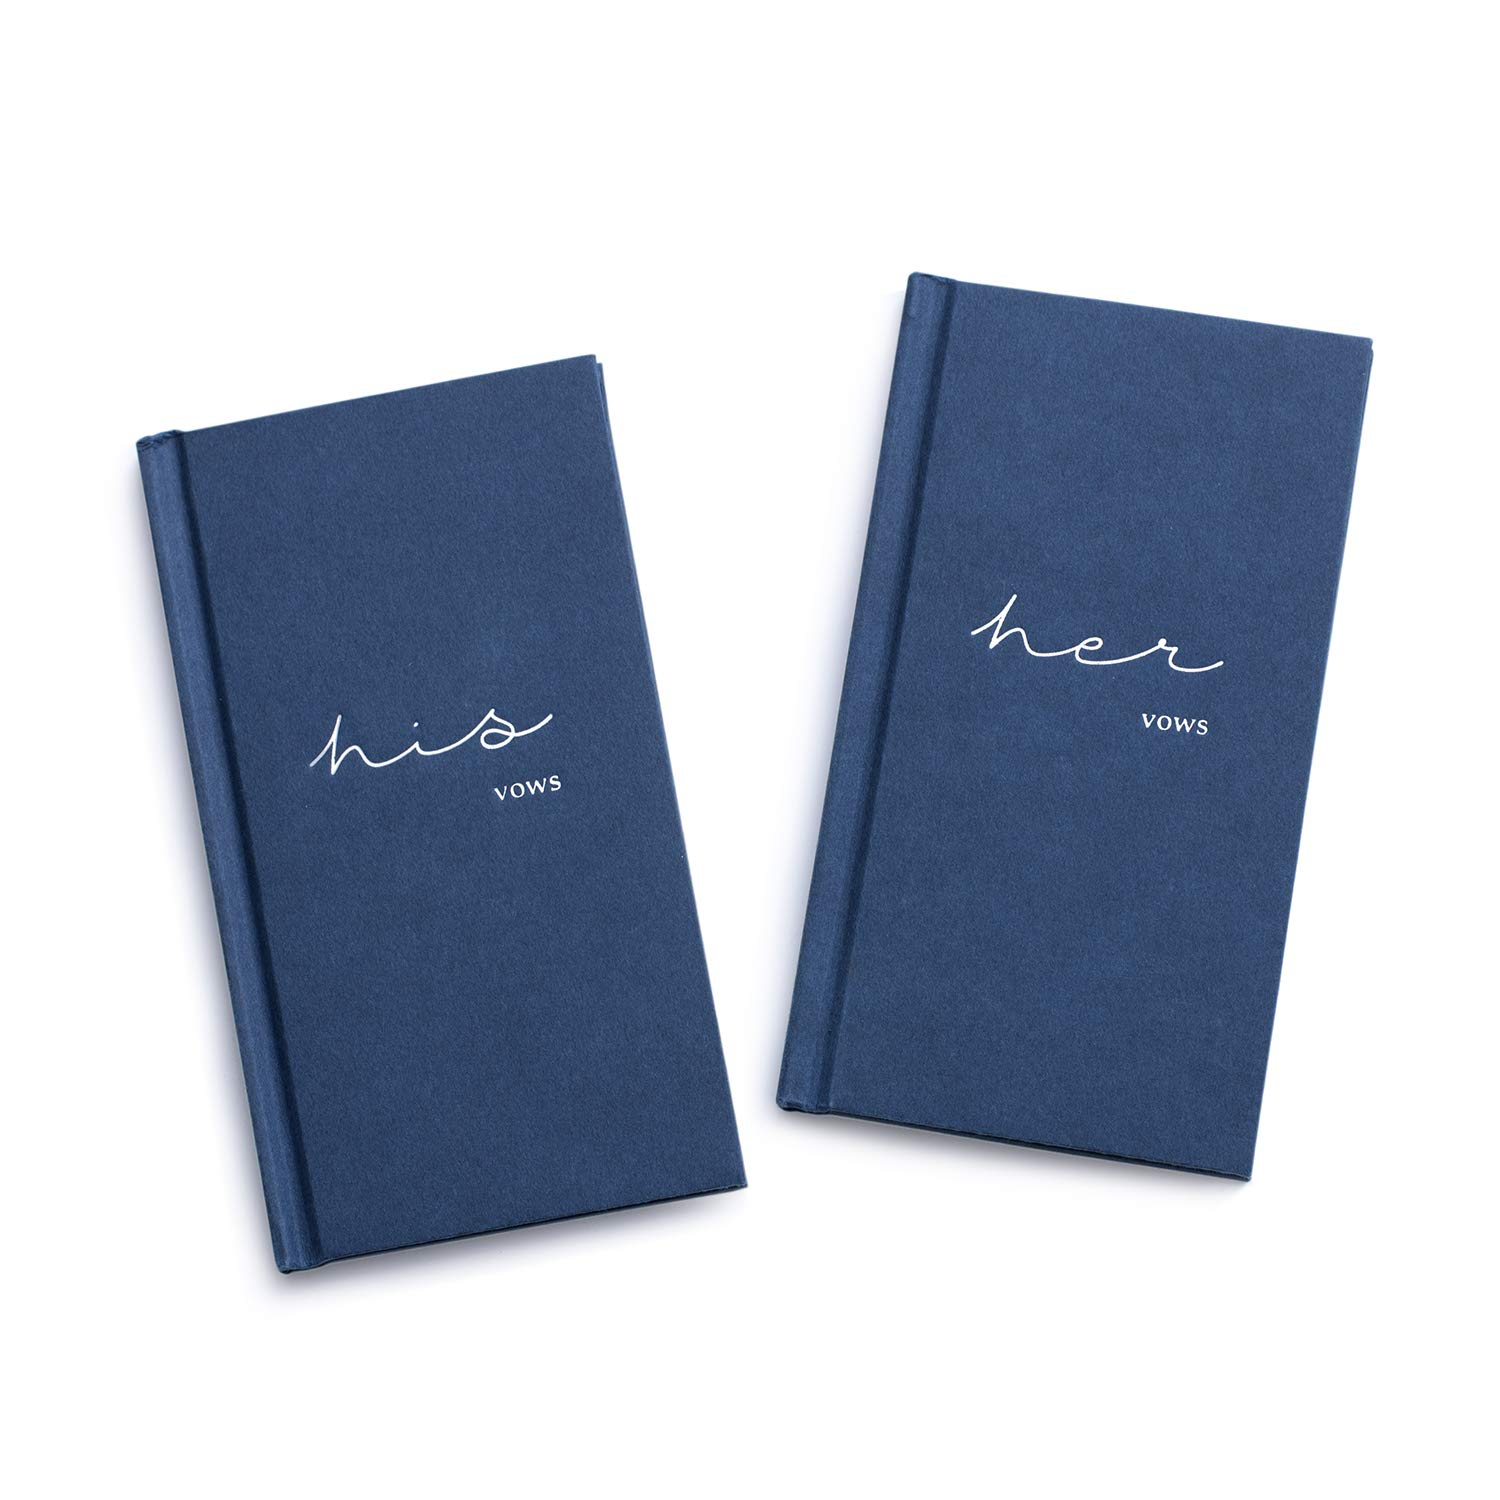 Ling's moment Hardcover Vow Books His and Hers Wedding Vow Books Wedding Keepsake Wedding Journal(Navy Blue) by Ling's moment